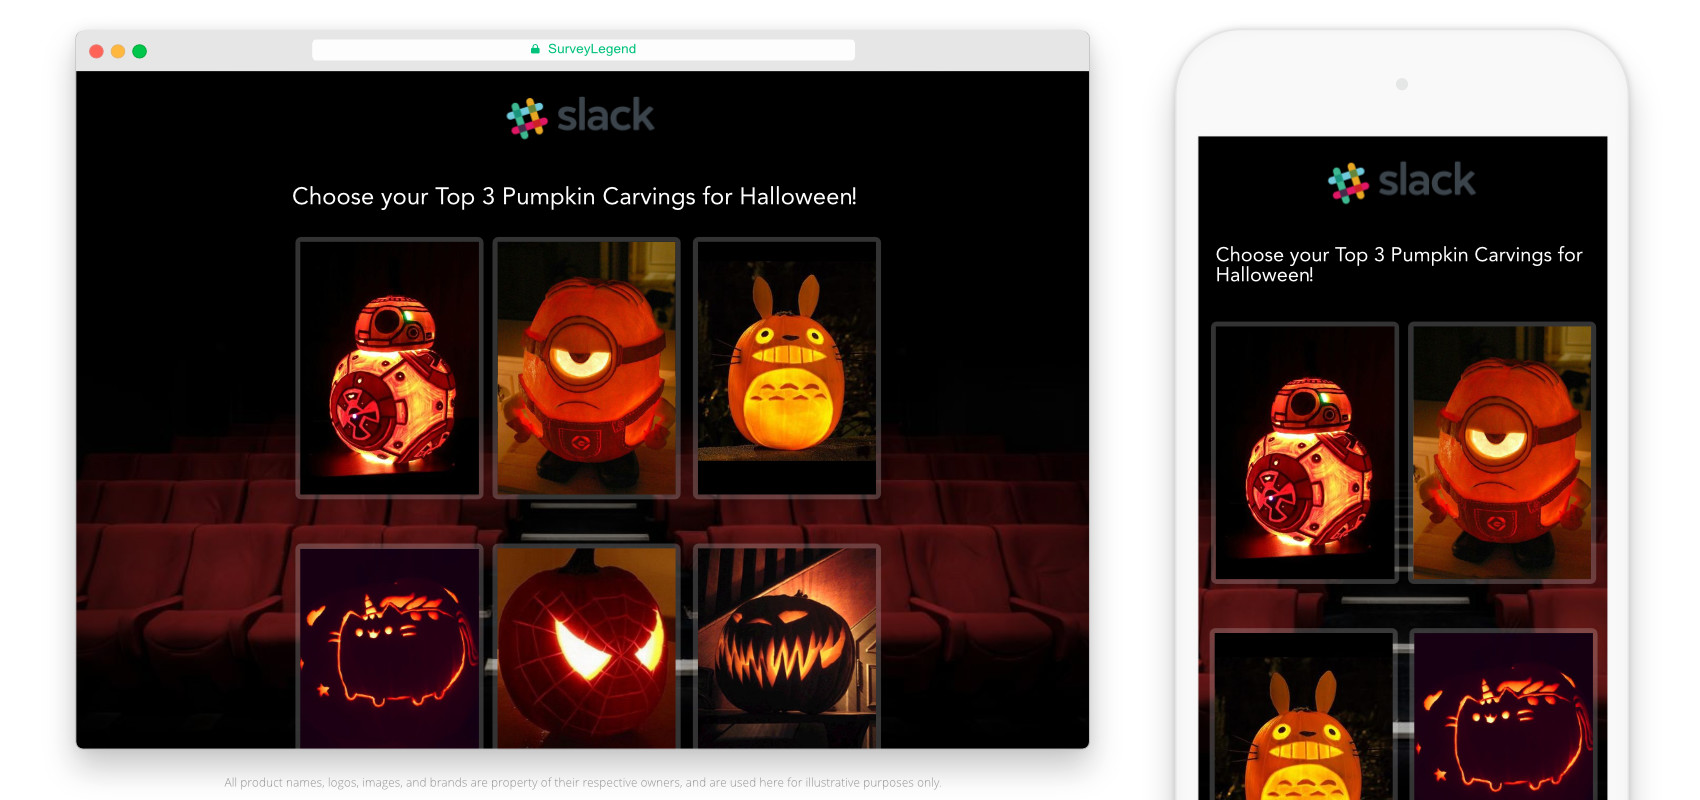 how to make a pumpkin carving contests for halloween | surveylegend ®